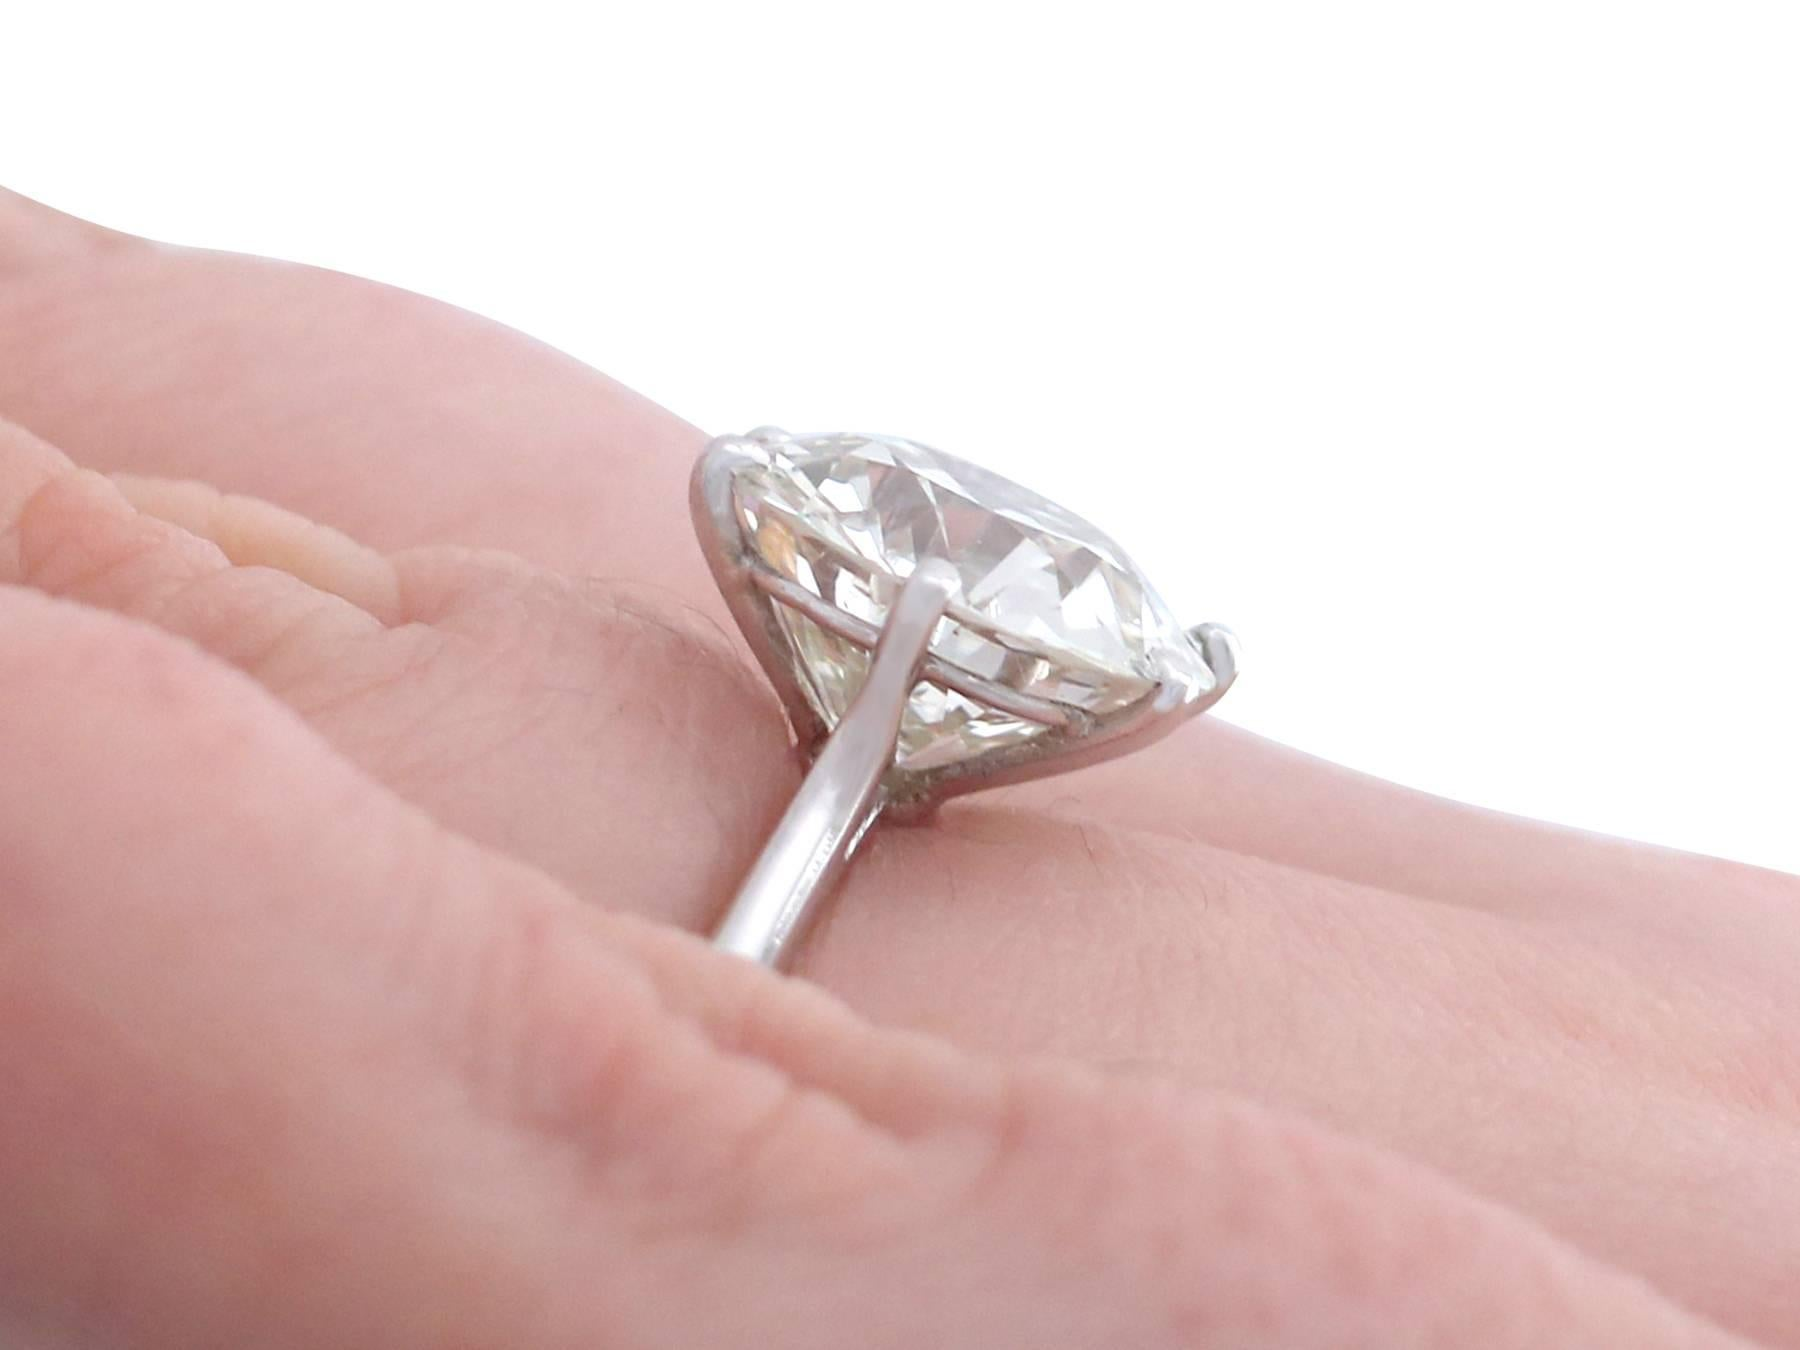 1910s-1950s 4.60 Carat Diamond and Platinum Solitaire Ring at 1stdibs